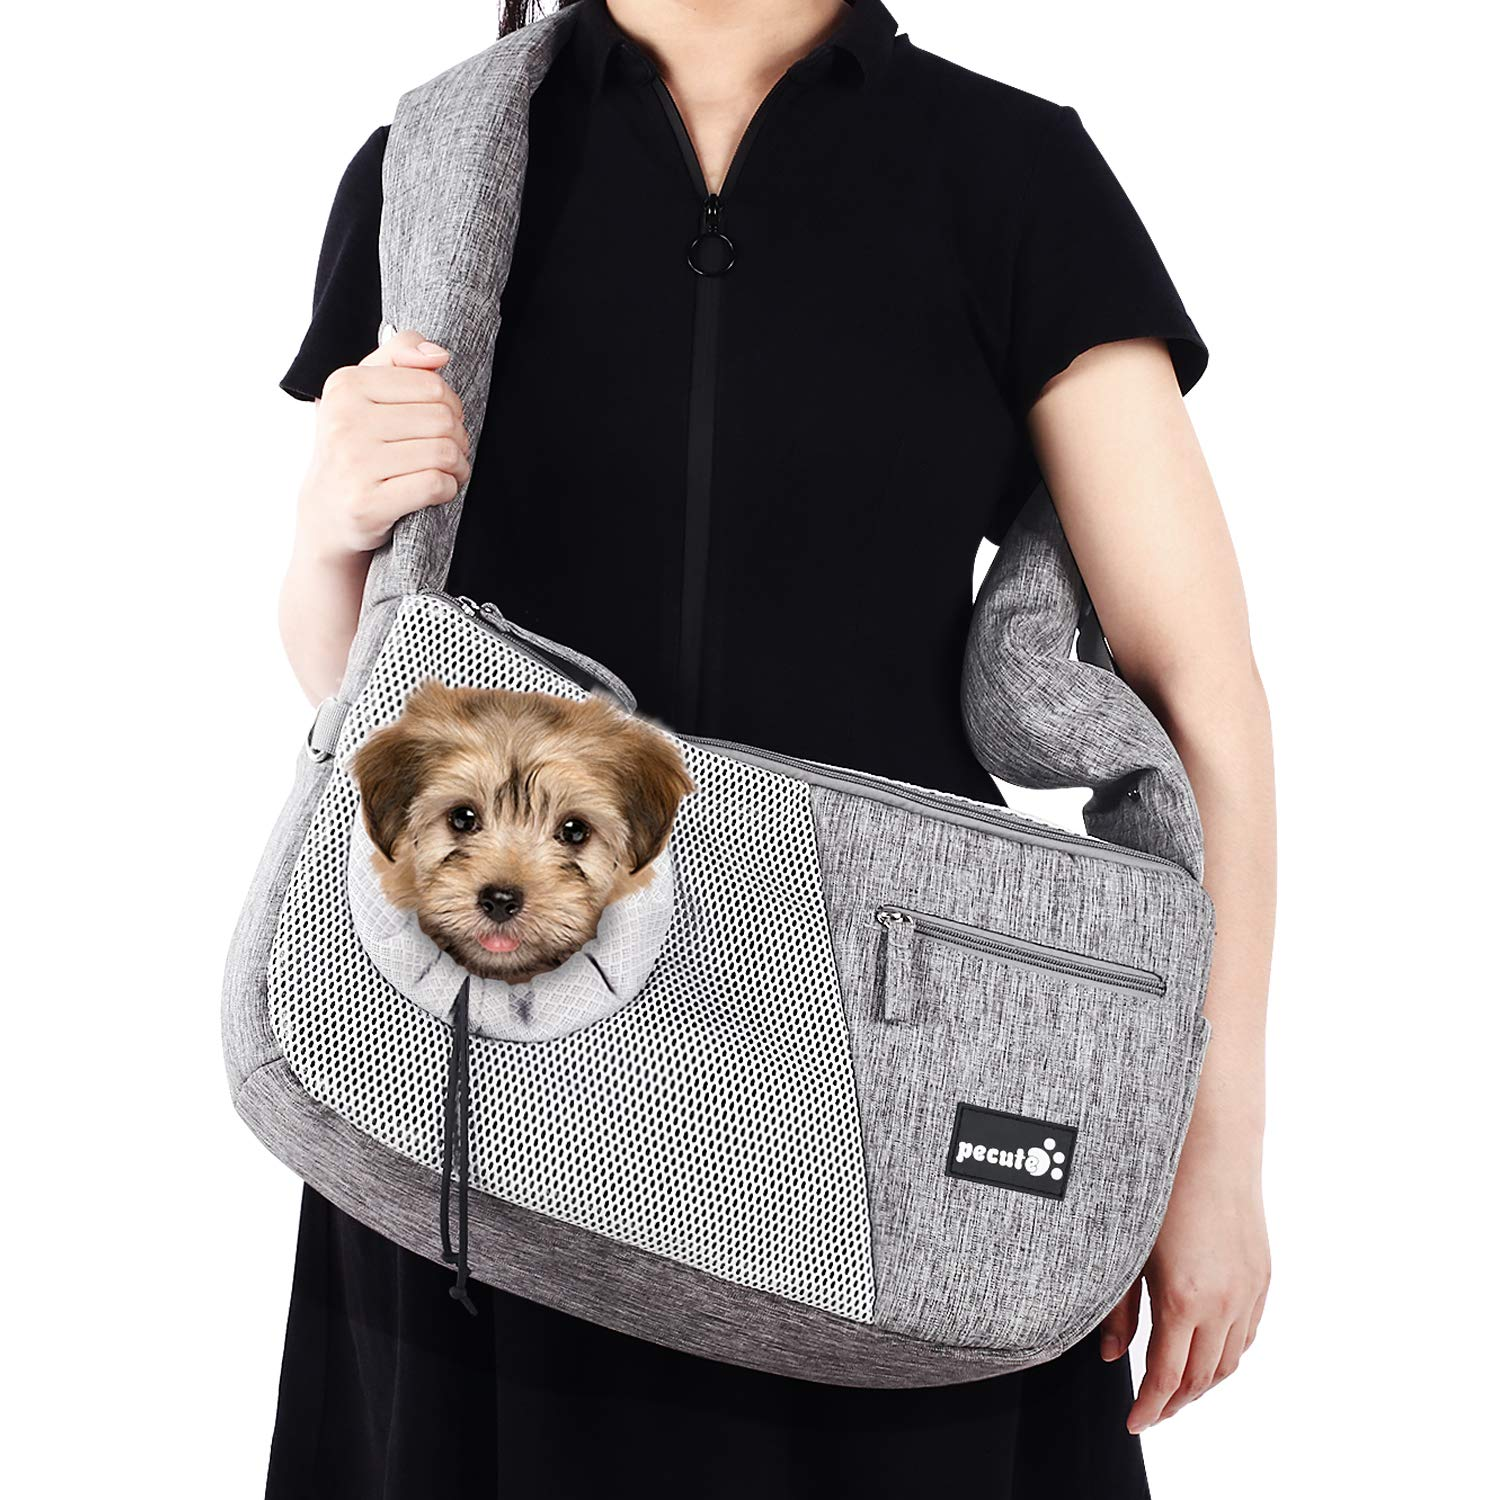 Pecute Pet Sling Bag Carrier, Small Dog Cat Carrier with Breathable Window Comfortable Decompression Hand Free Pet Puppy Outdoor Travel Bag Tote Reversible, Maximum 15kg Price: $36.99